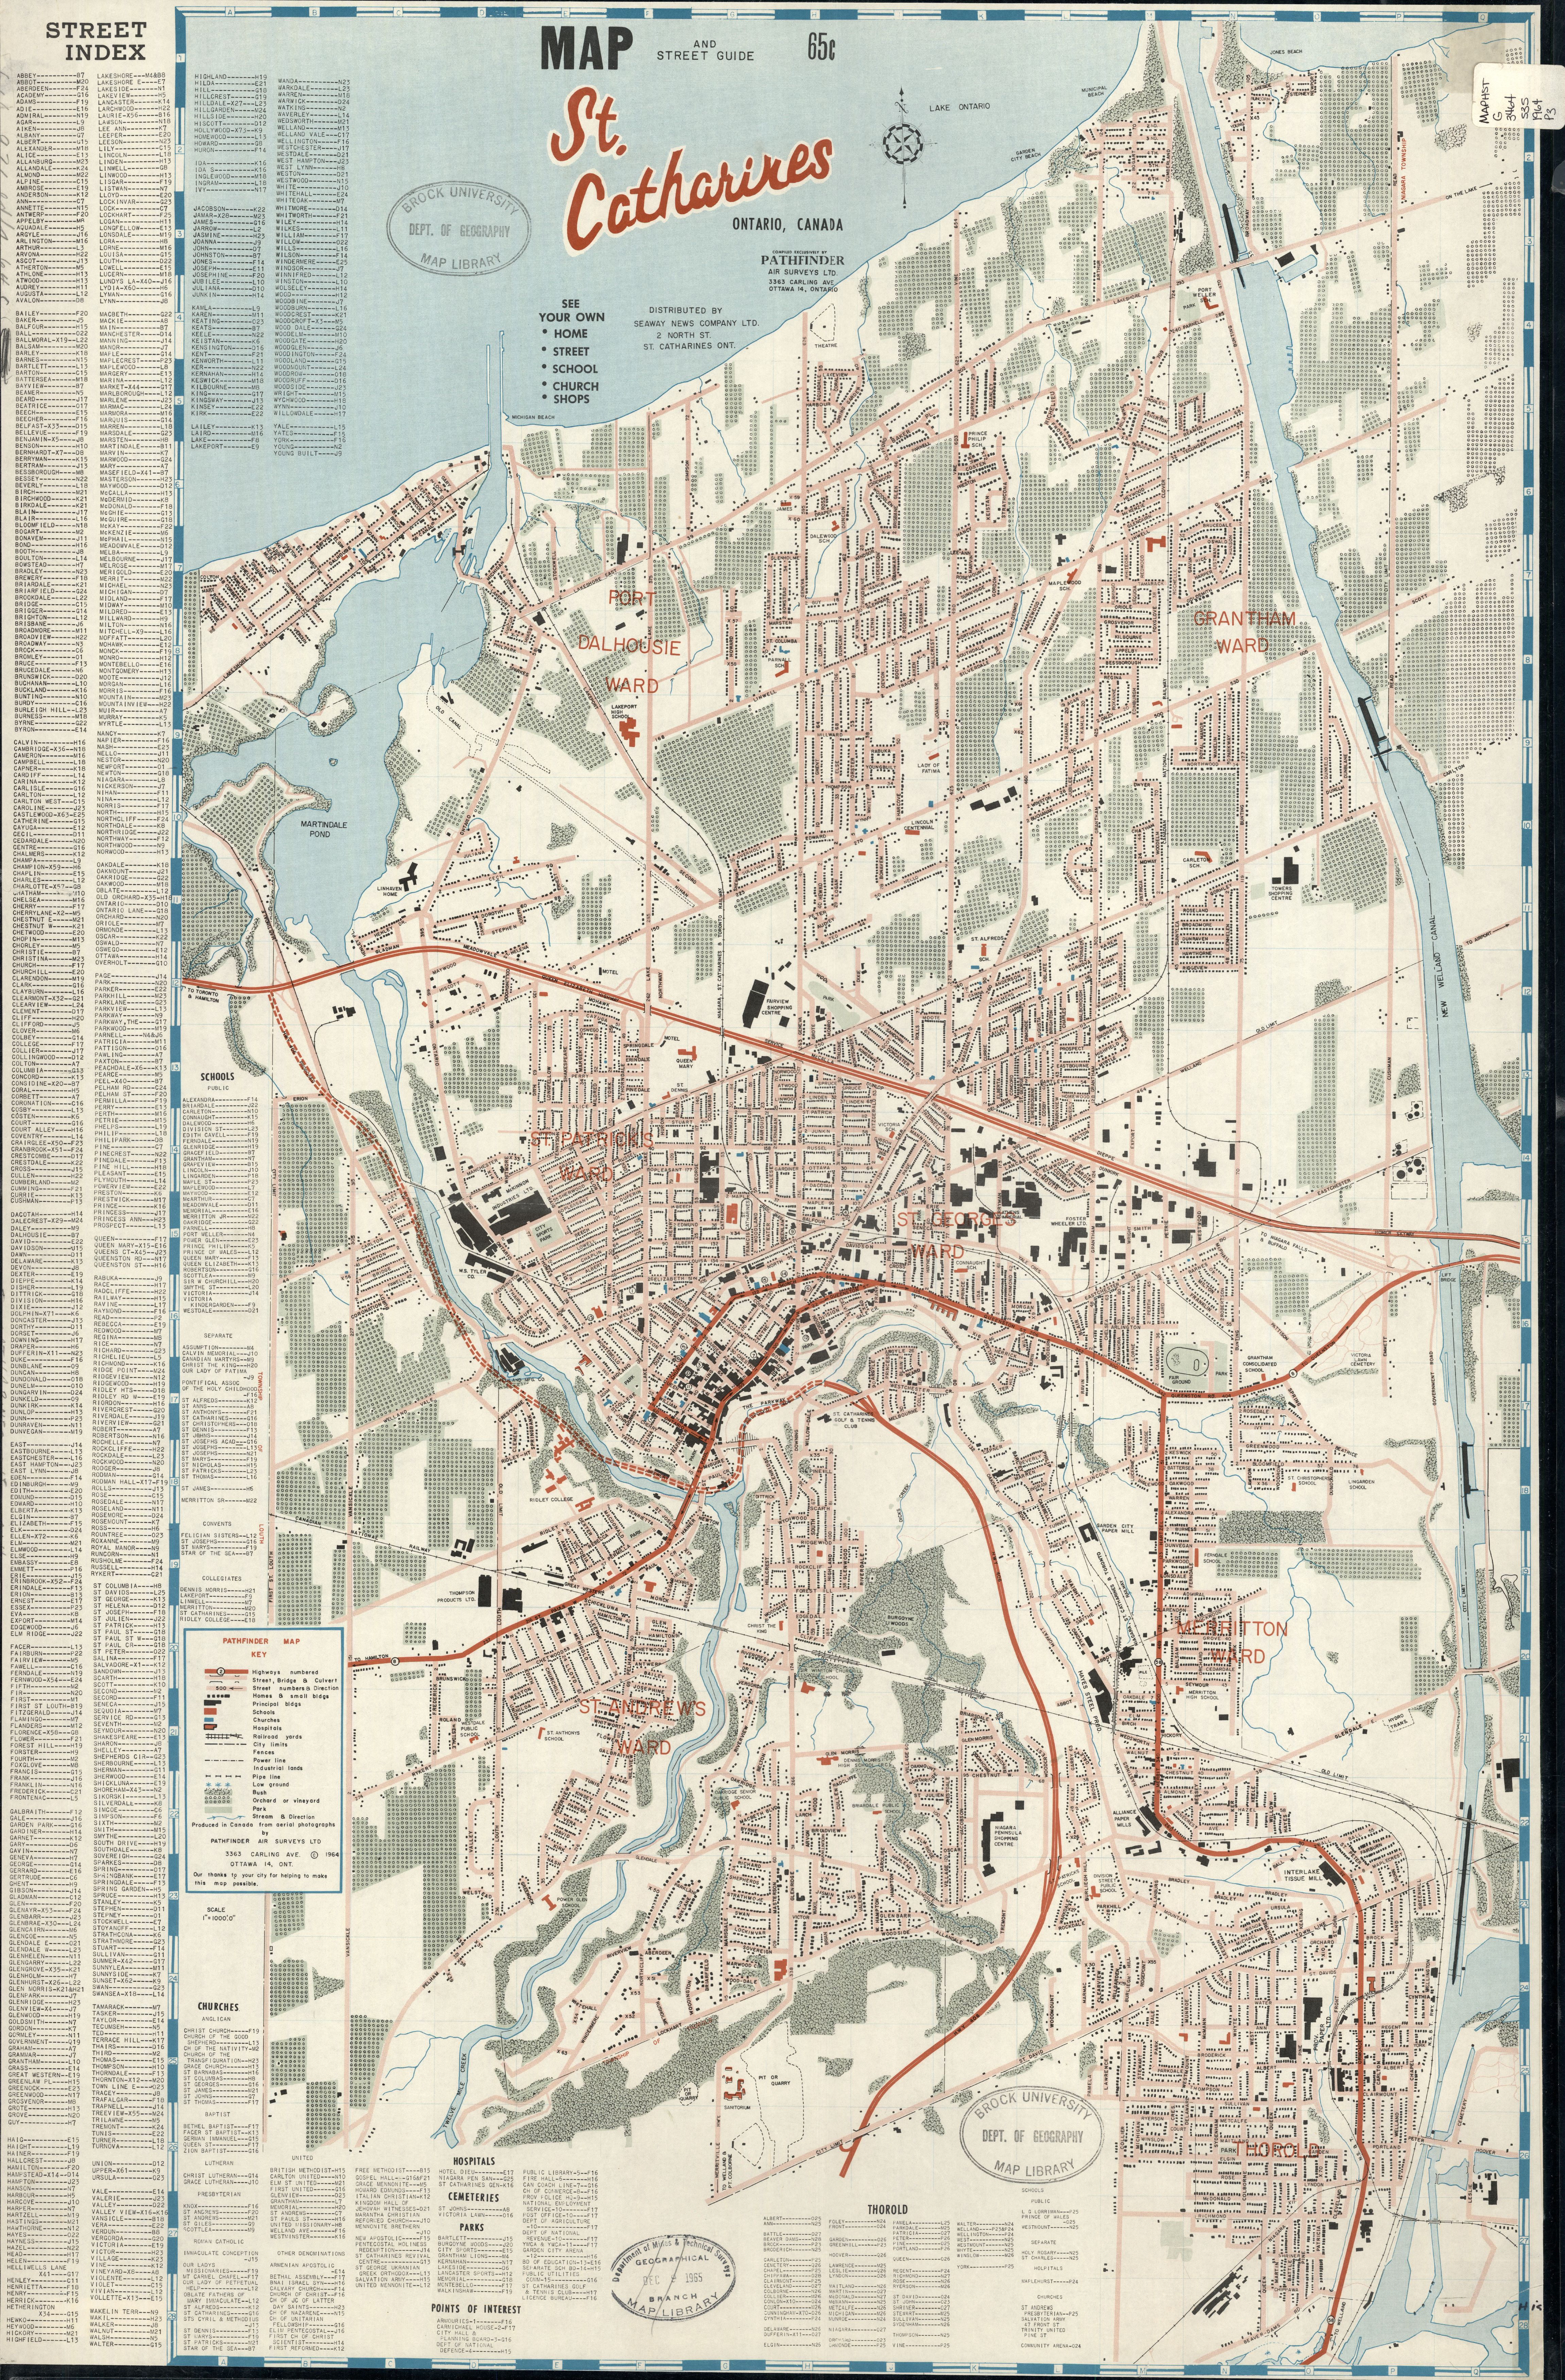 Map Of St Catharines Map and street guide, St. Catharines, Ontario, Canada Map Of St Catharines